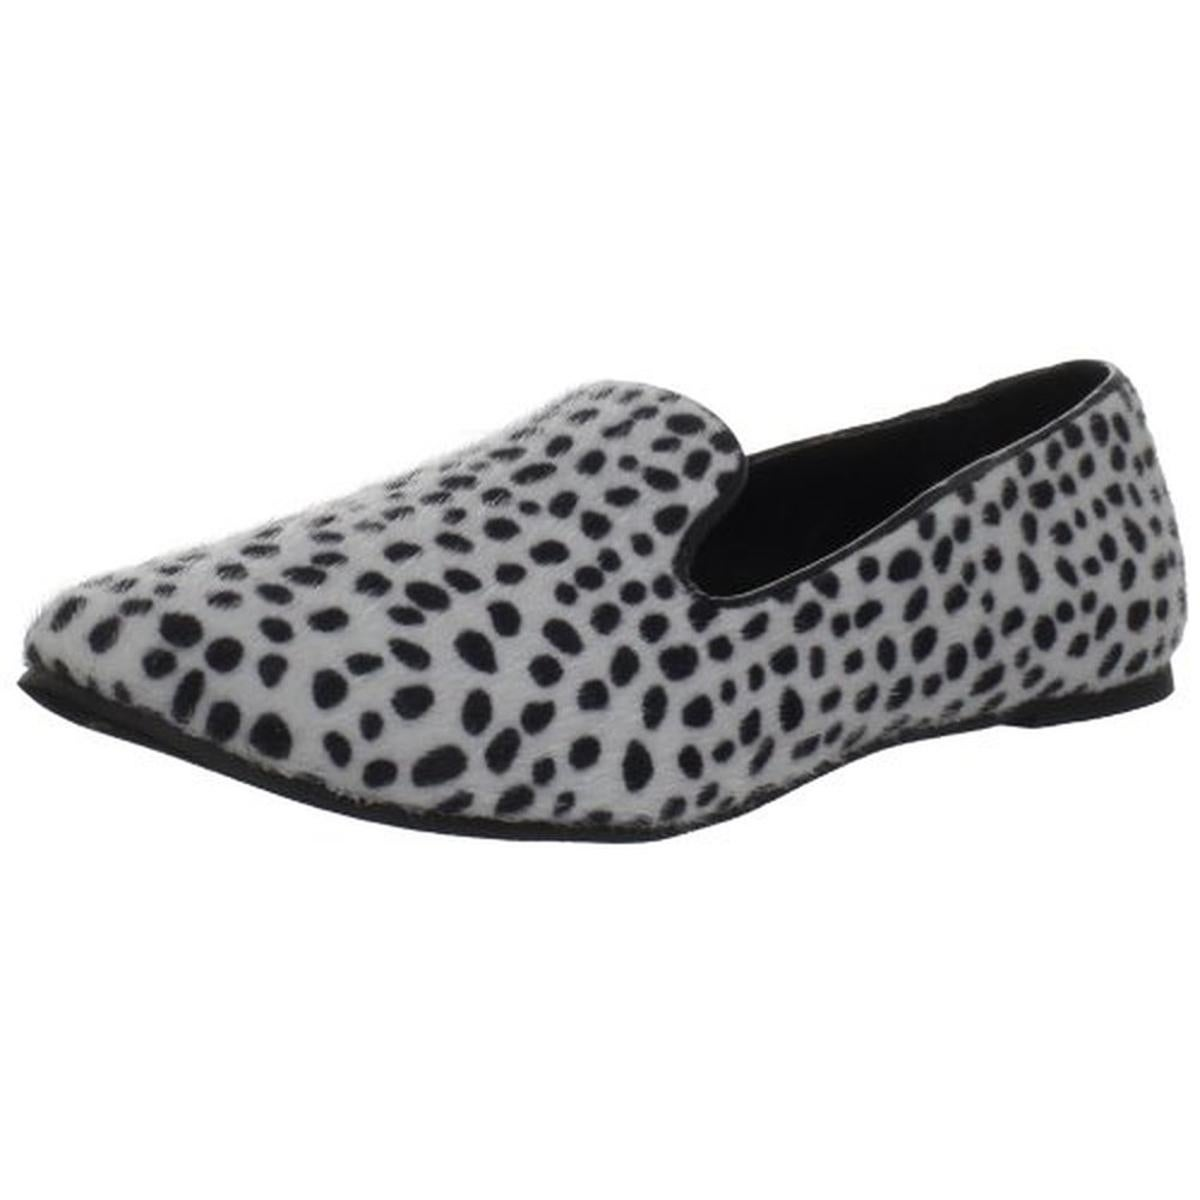 8cdd5e6da0b Shop Bootsi Tootsi Womens Smoking Loafers Shimmer Leopard Print - Free  Shipping On Orders Over  45 - - 13060294